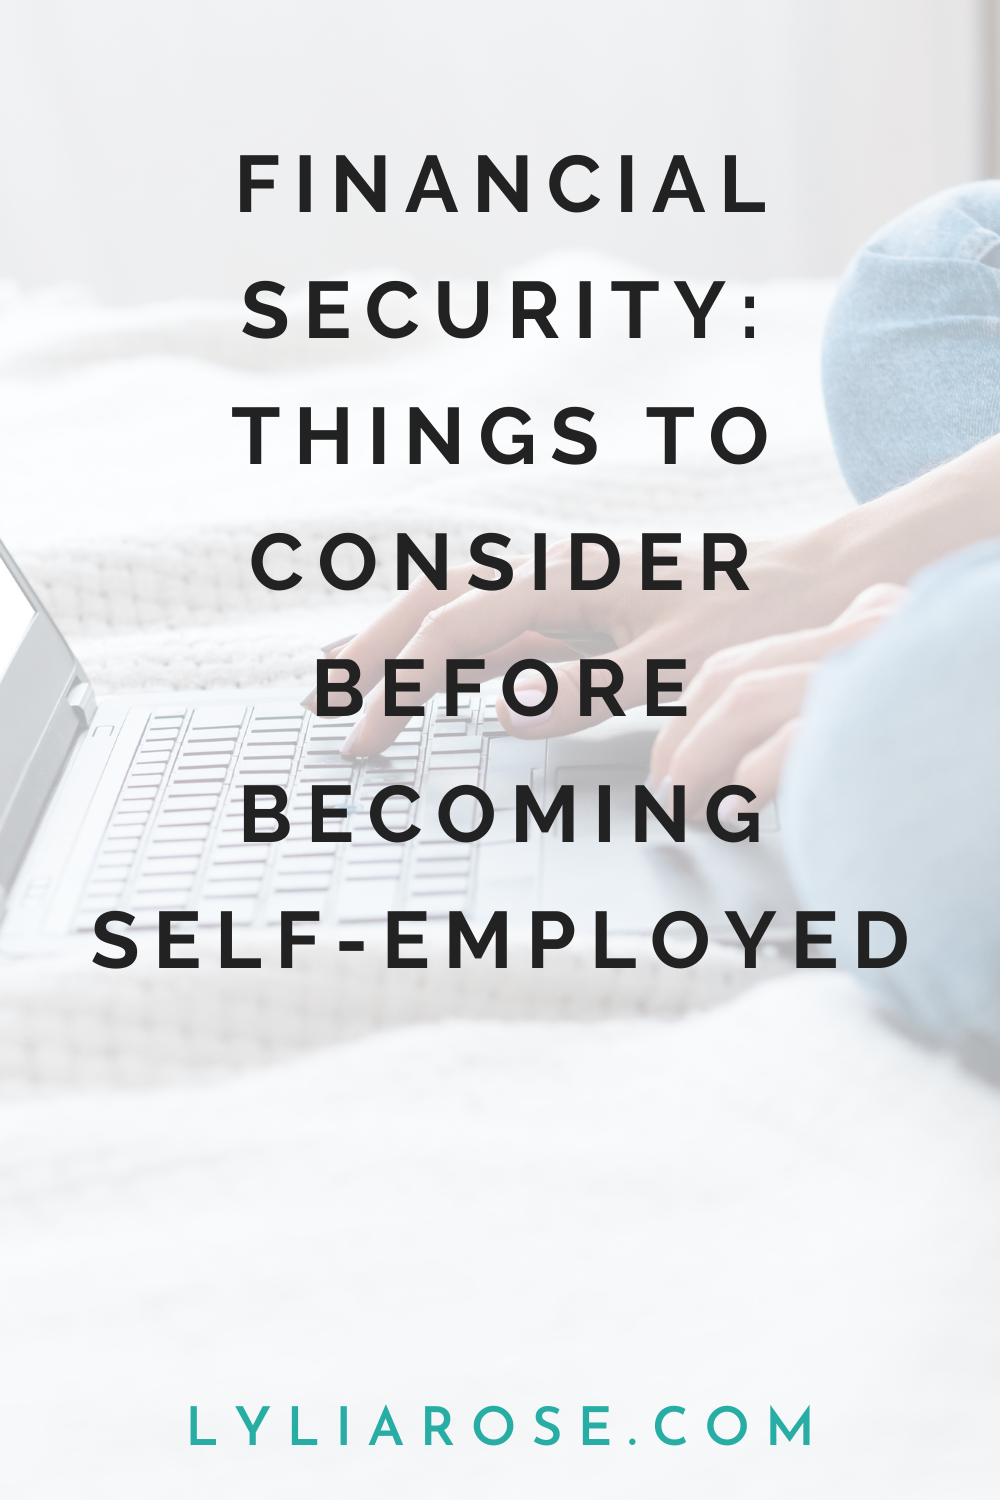 Financial security_ things to consider before becoming self-employed (1)